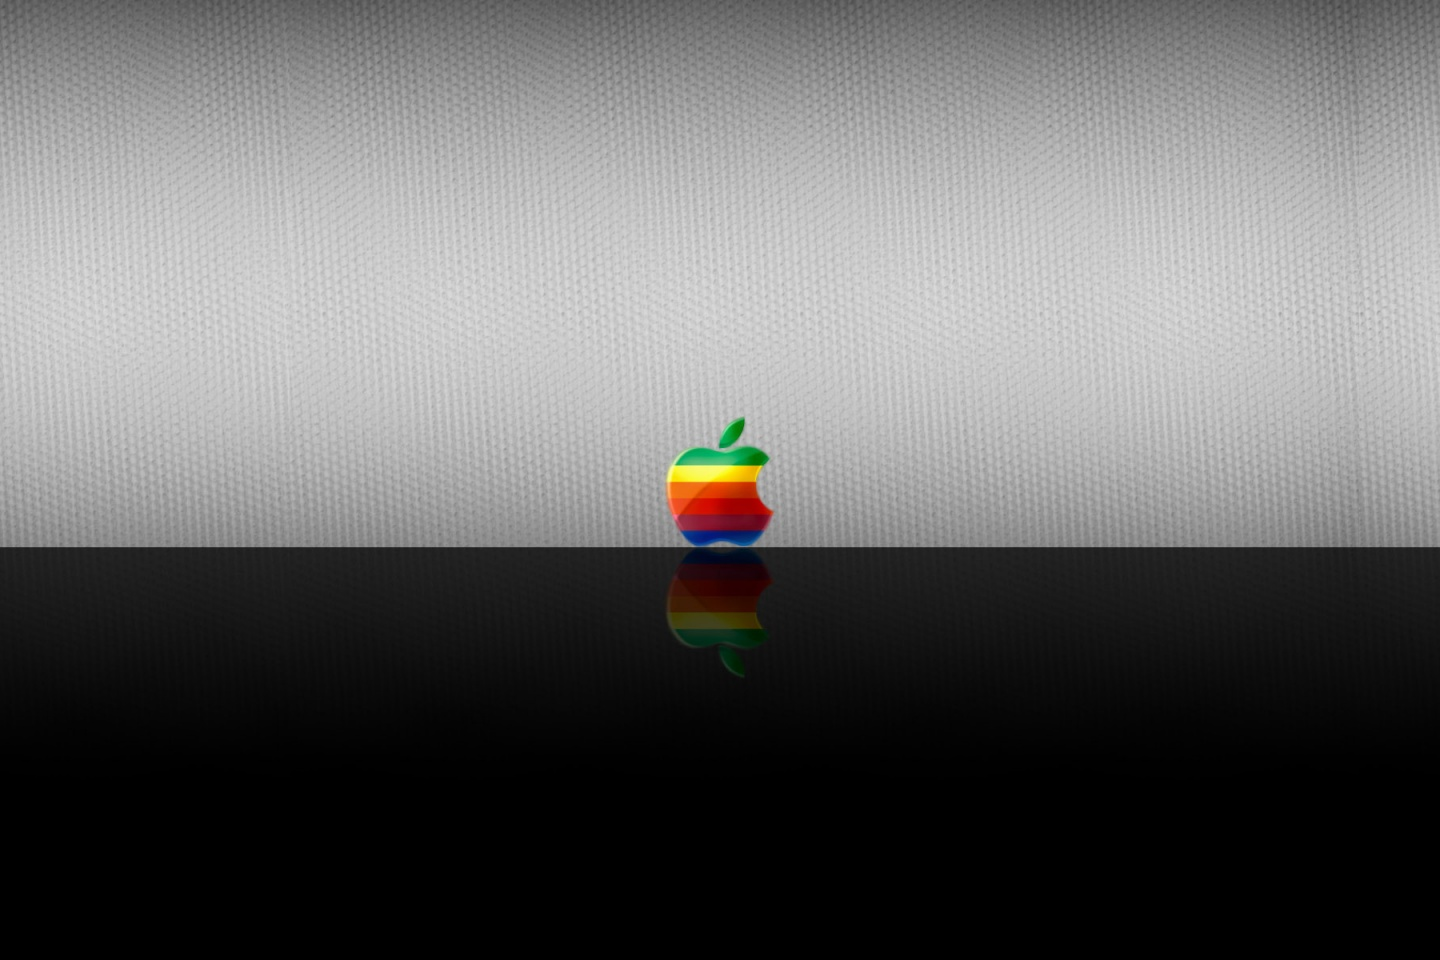 Cool Apple Mac Wallpapers 1440x960 pixel Popular HD Wallpaper 21271 1440x960